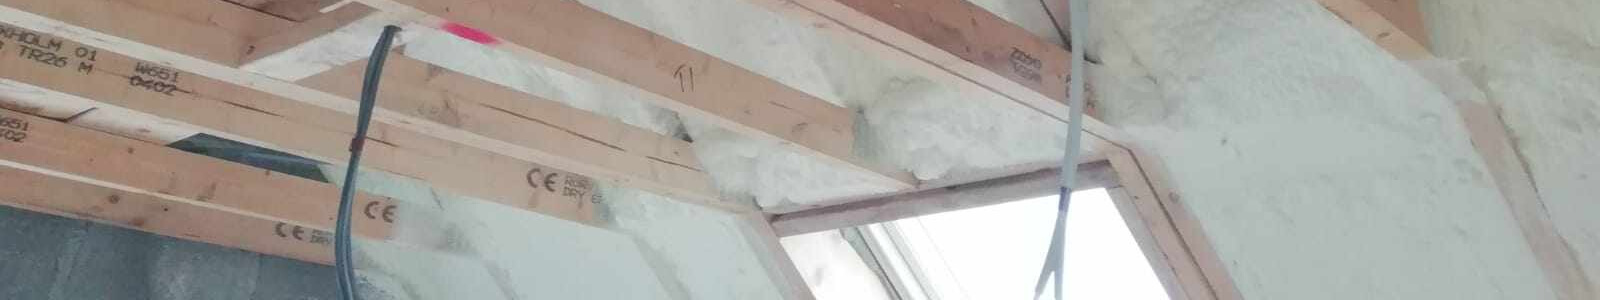 Timber Frame Insulation Ireland, Professional Spray Foam Insulation